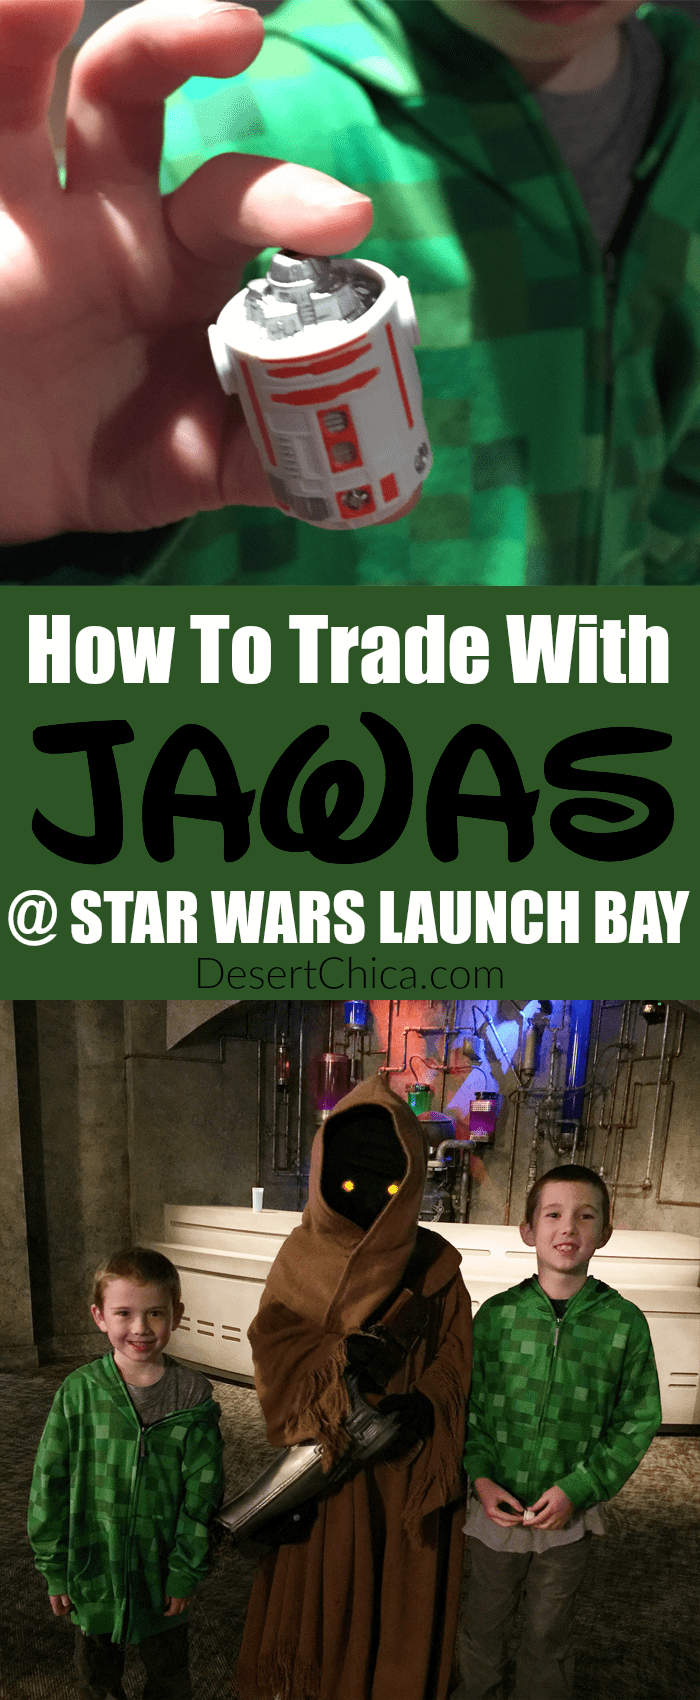 How to Trade with Jaws at Star Wars launch bay